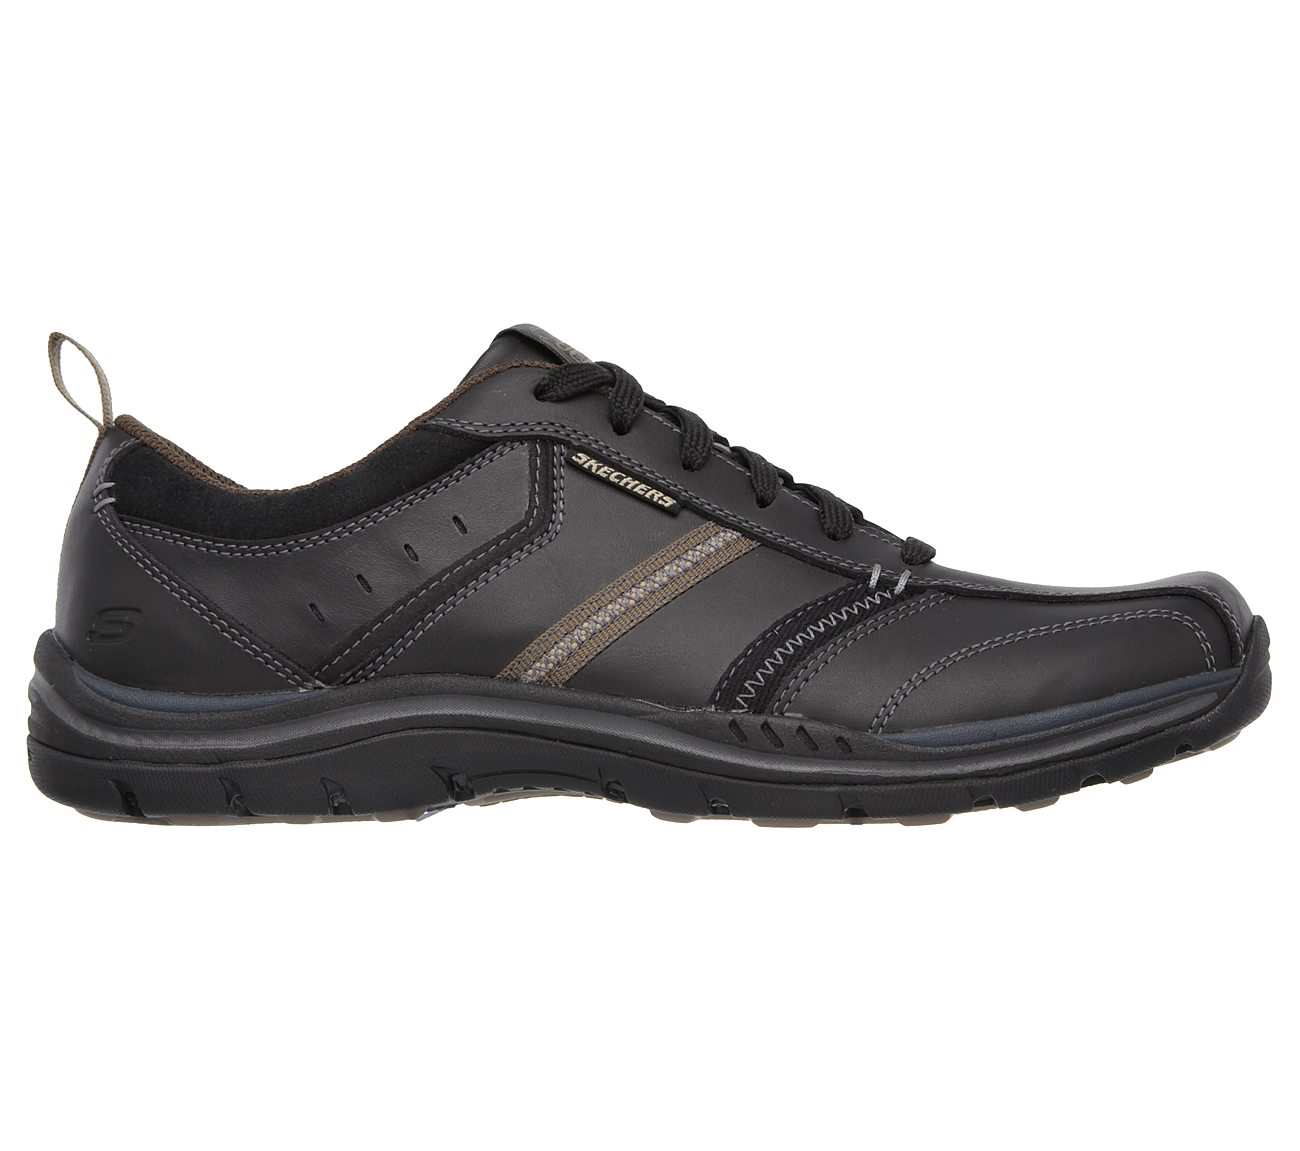 Buy SKECHERS Relaxed Fit Expected  Devention SKECHERS Modern Comfort Shoes  only 5700